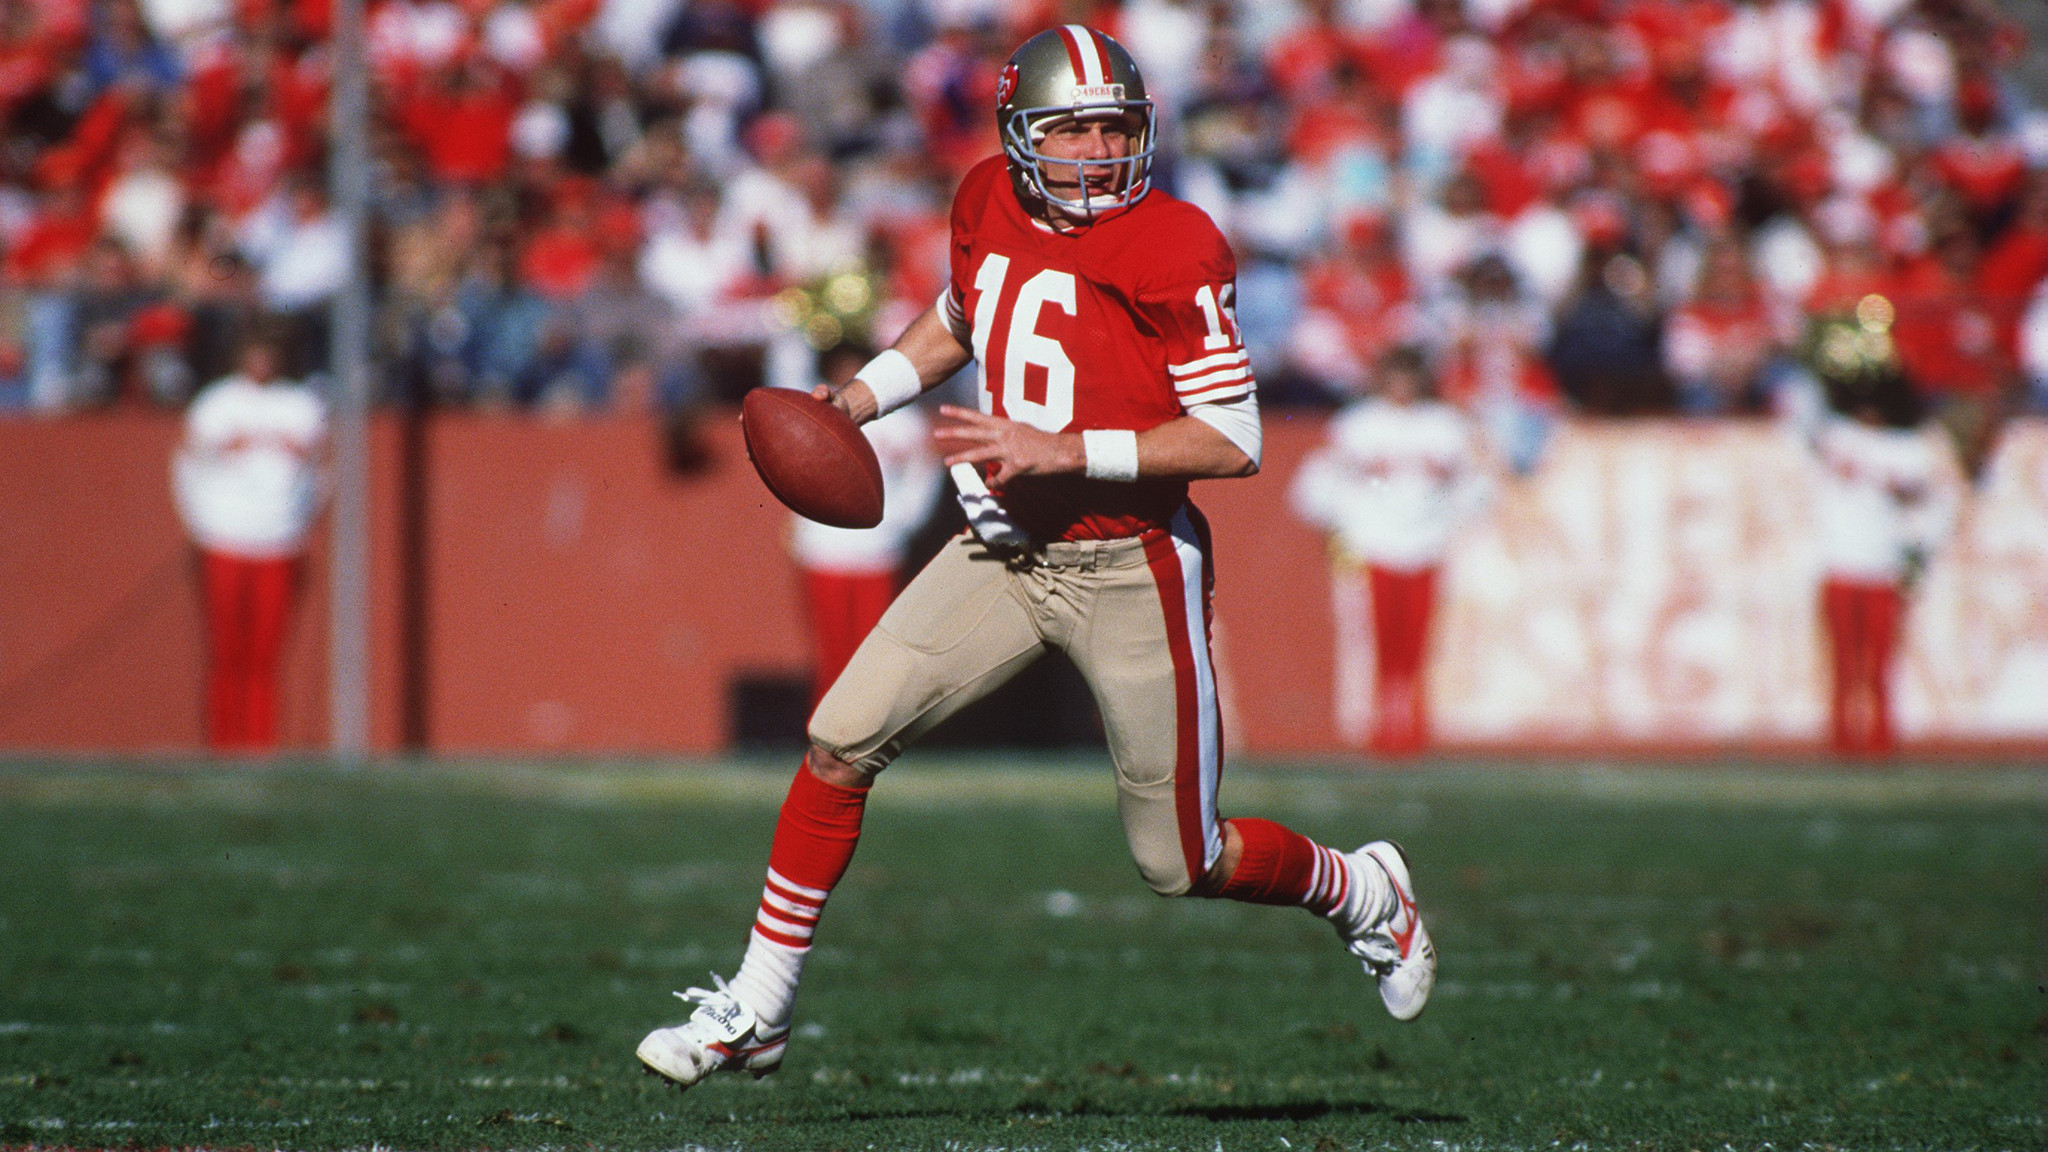 Joe Montana says 49ers players used silicone discusses 2048x1152